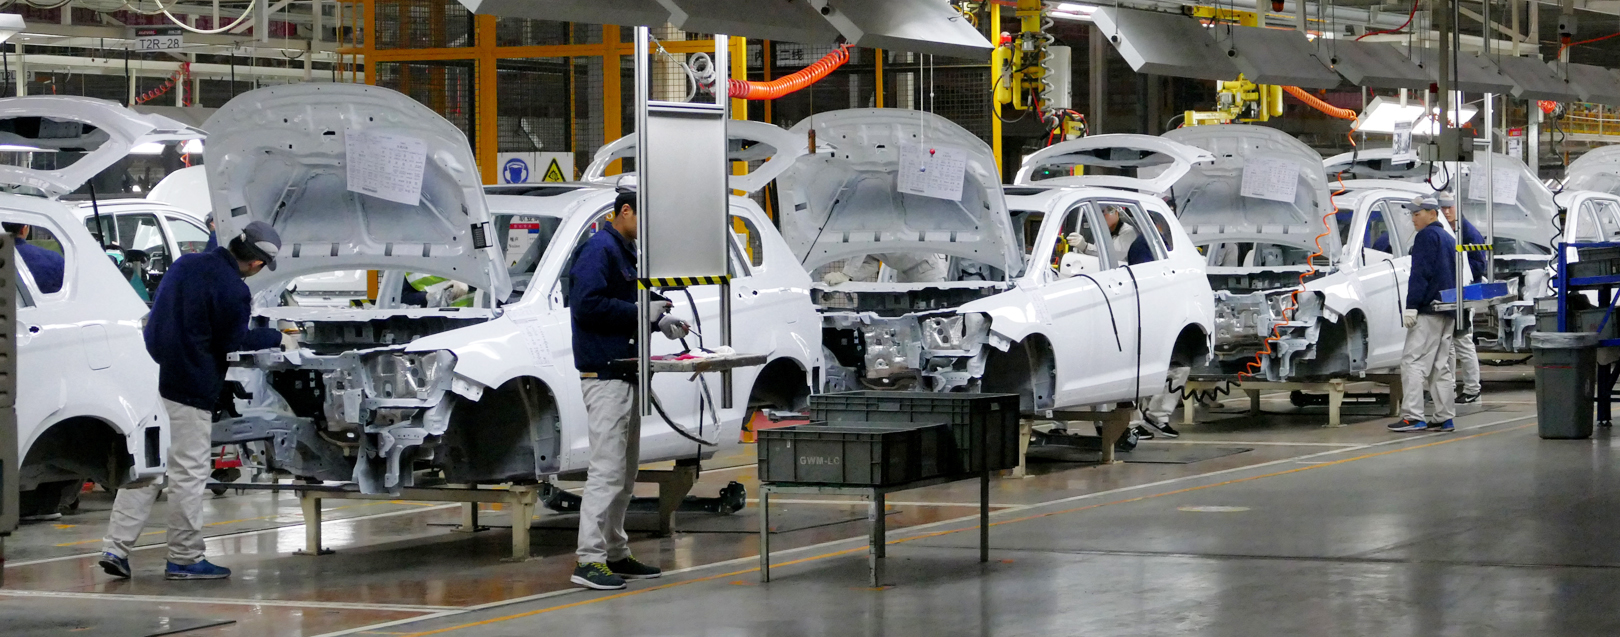 China's manufacturing growth unexpectedly accelerated in Aug